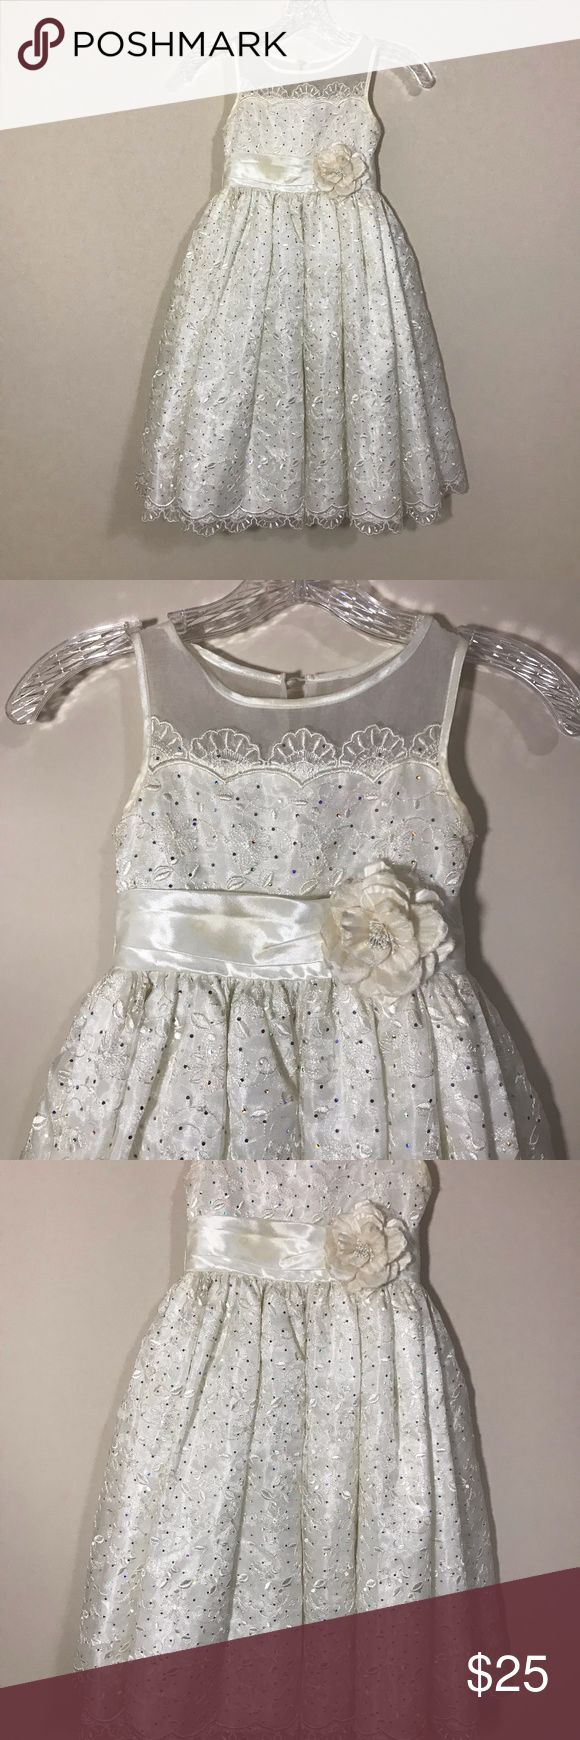 "KLEINFELD GIRLS 6 FLOWER GIRL DRESS KLEINFELD OFF WHITE FLOWER GIRL DRESS SIZE 6. WORN ONCE. STAIN ON BELT AS SHOWN IN PHOTO-YOU CAN JUST REPLACE THE BELT. RHINESTONE AND LACE DESIGN FRONT AND BACK WITH FLOWER AND BELT. PIT TO PIT 11"" LENGTH 32"" 234-E KLEINFELD Dresses Formal"